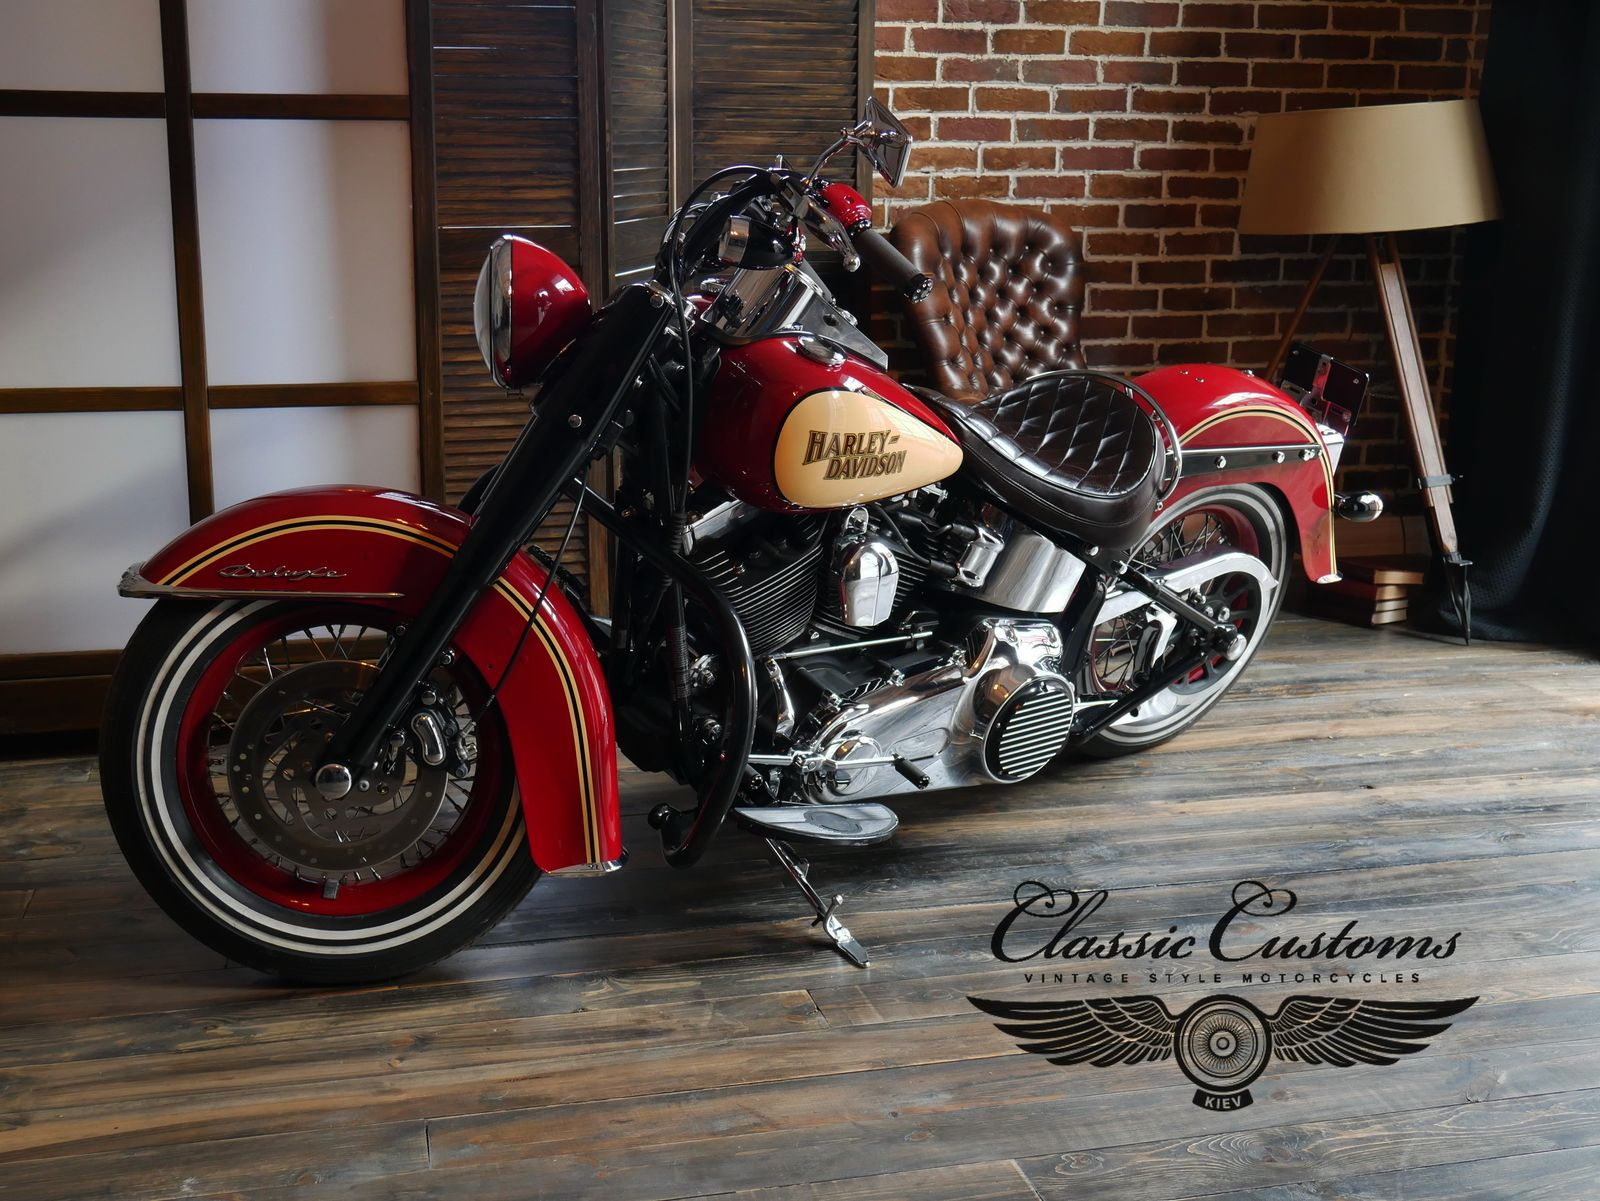 HD Softail Deluxe 2010 Morgan